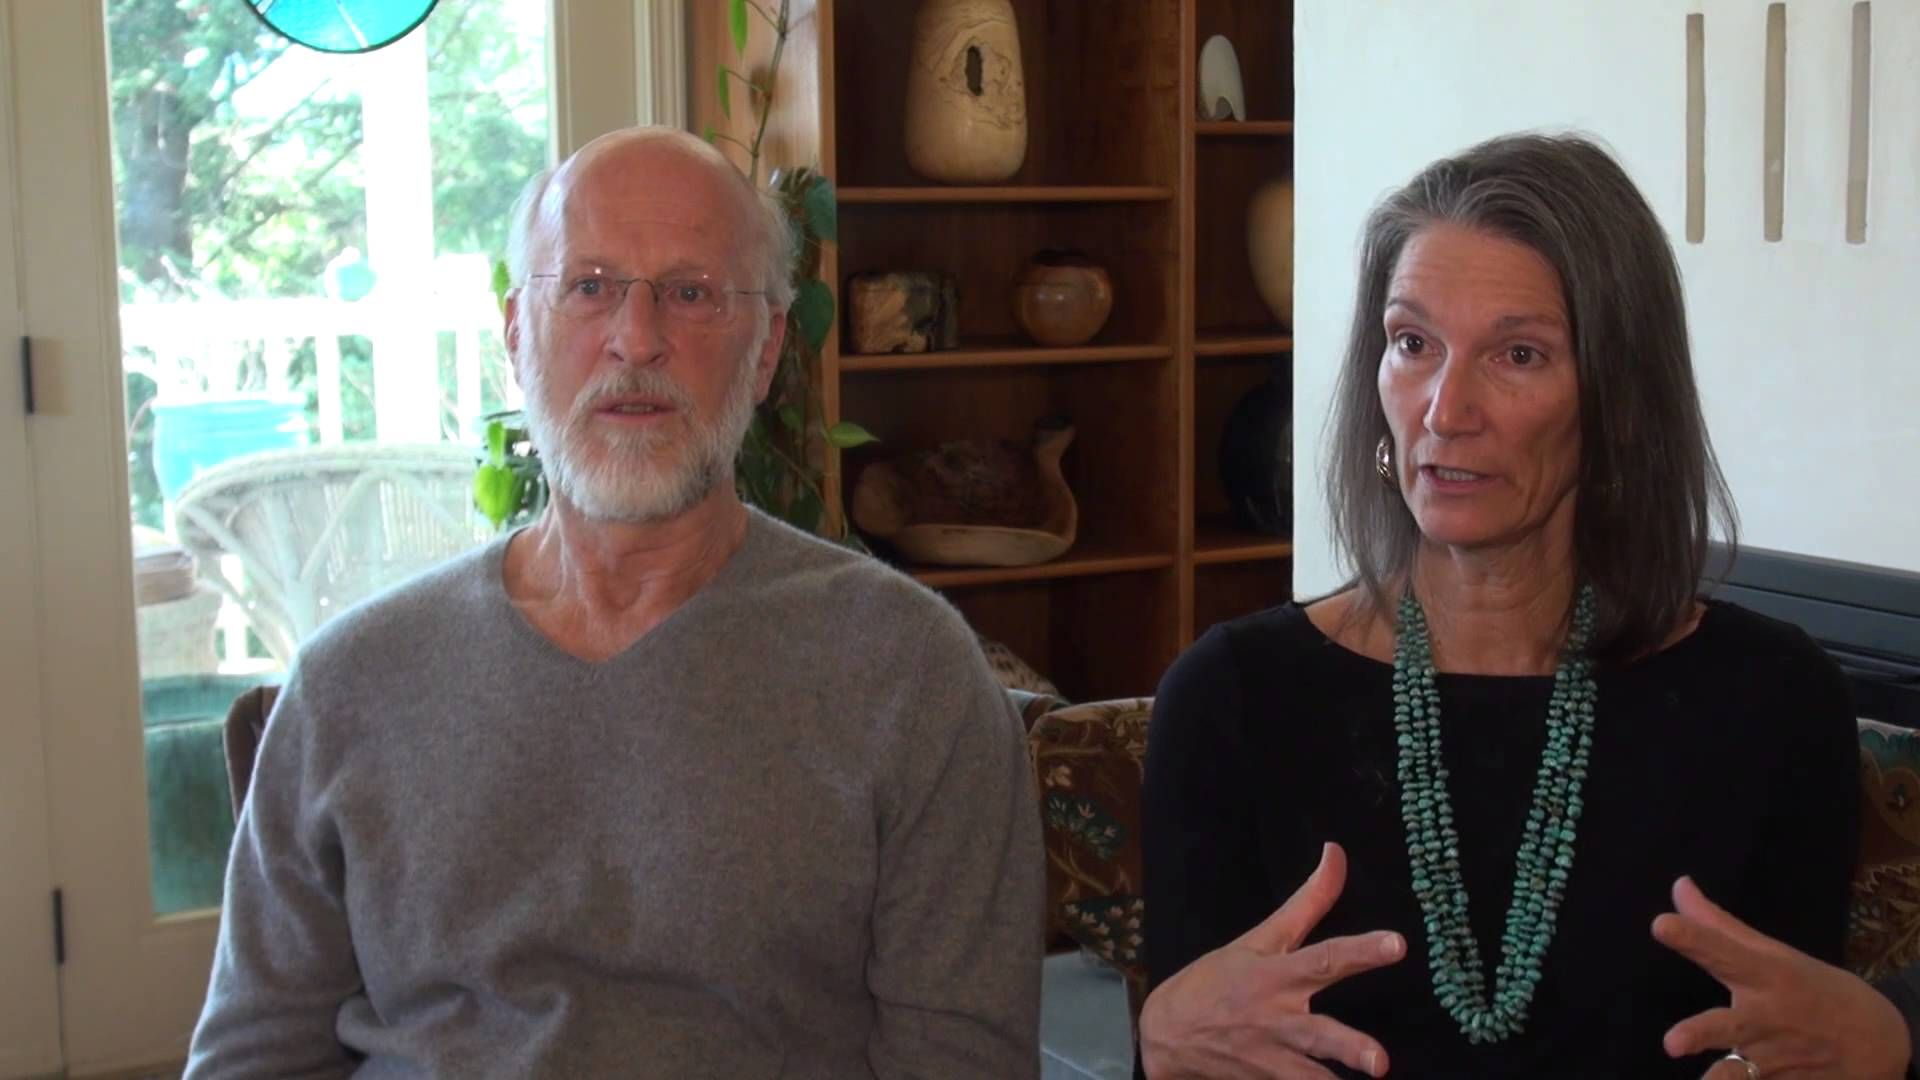 Robert and Diane beautifully share with Julie what their delightful and vibrant relationship feels like from the inside, how they keep their connection on a ...